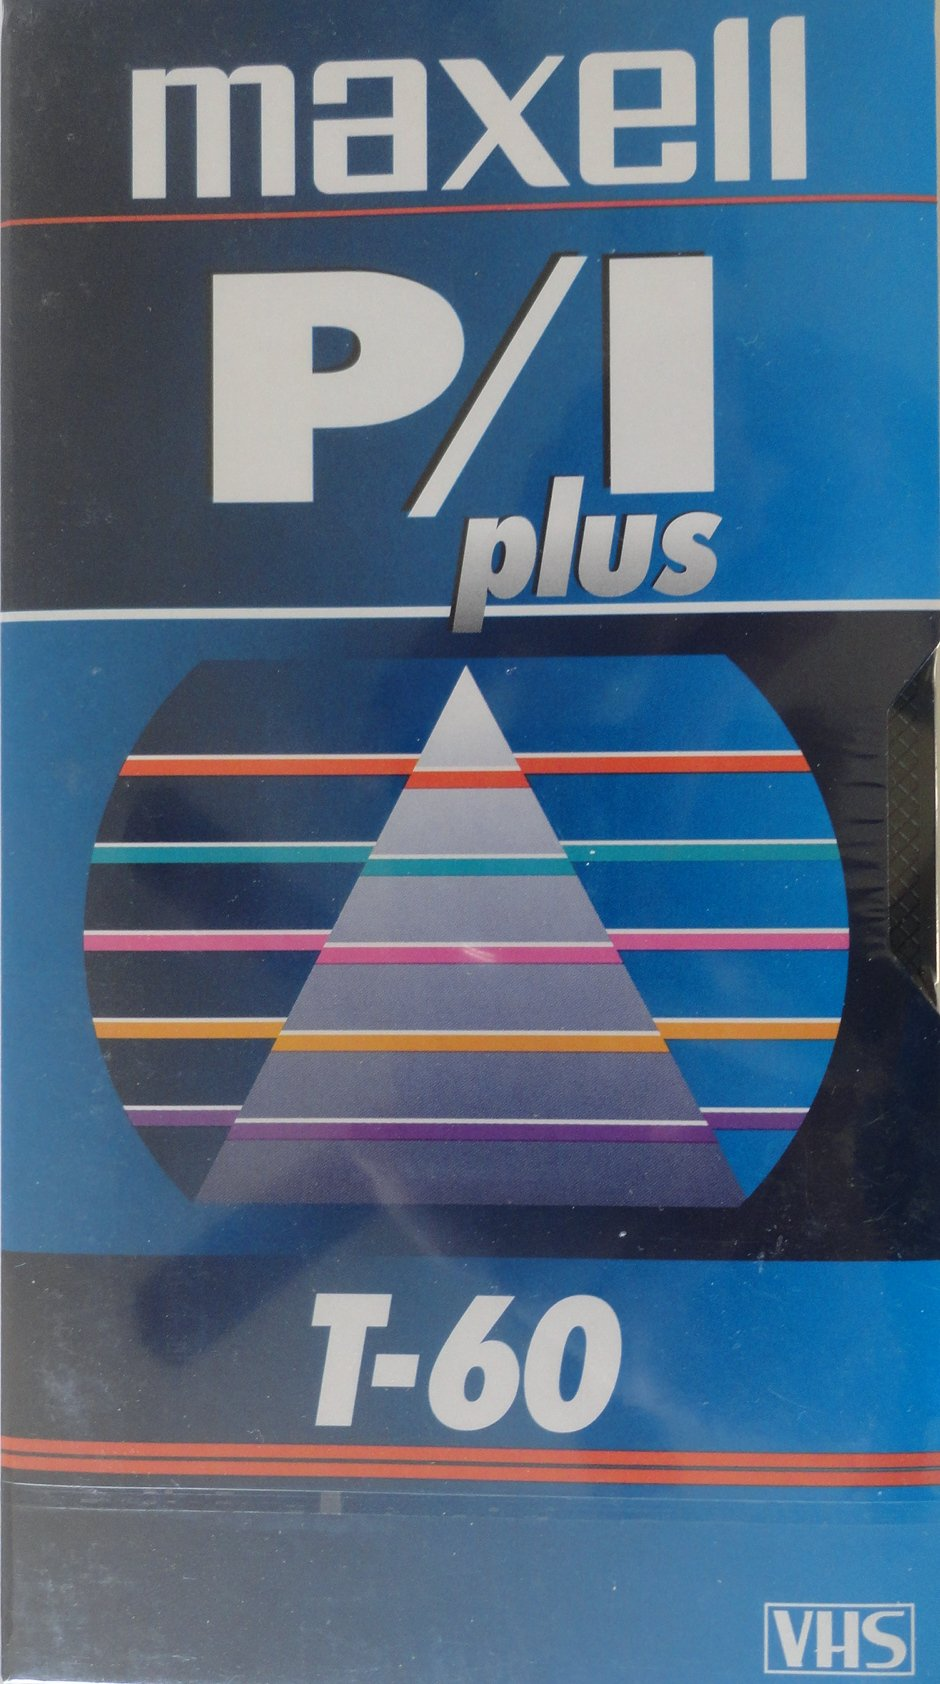 MAXELL T-60 PLUS Professional VHS tape - 10 Pack by Maxell